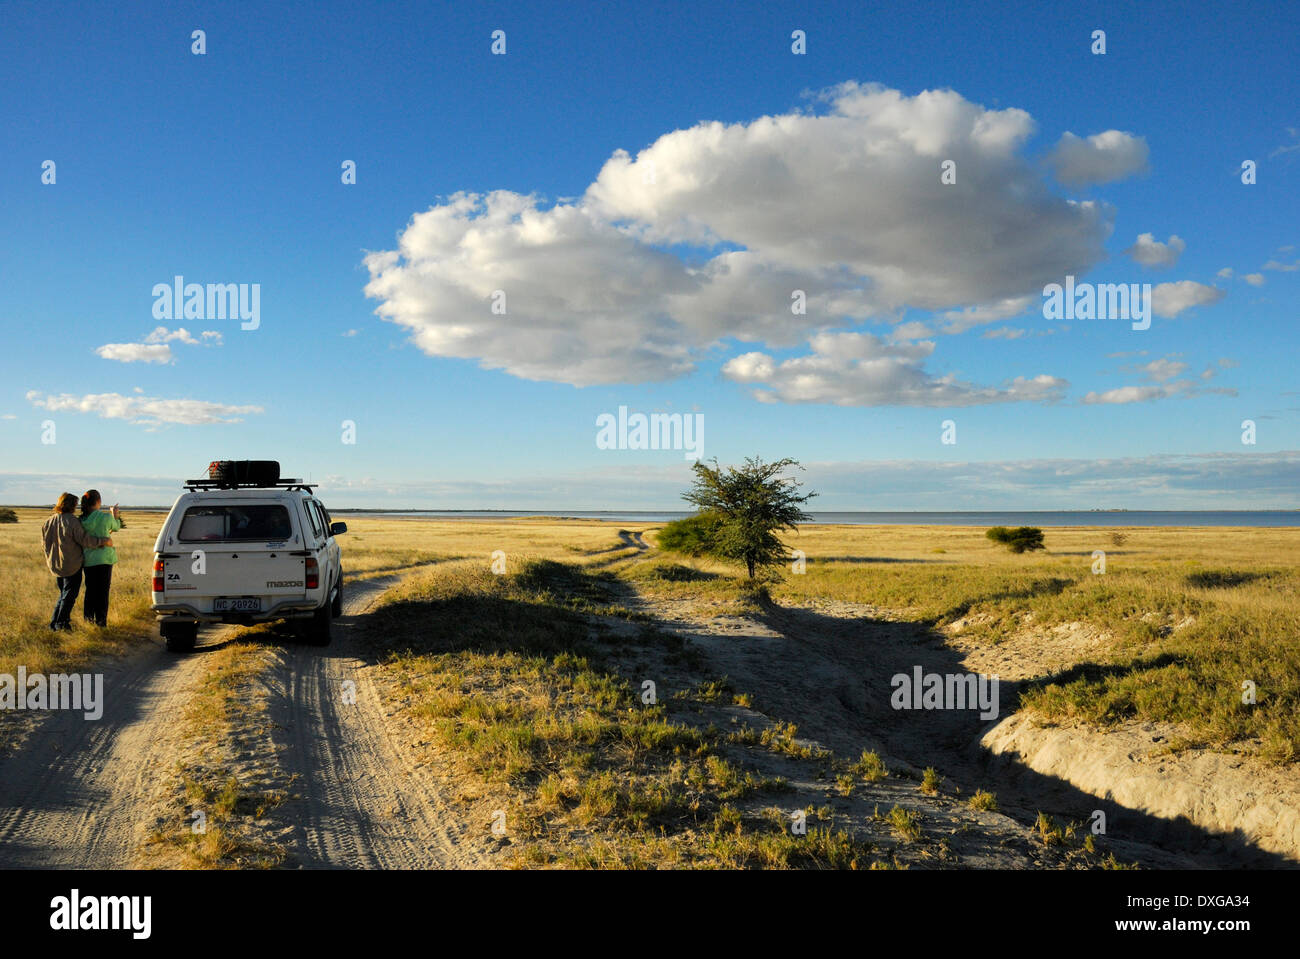 The track at the edge of the flooded Sowa Pan in the Makgadikgadi Pans, Botswana. - Stock Image